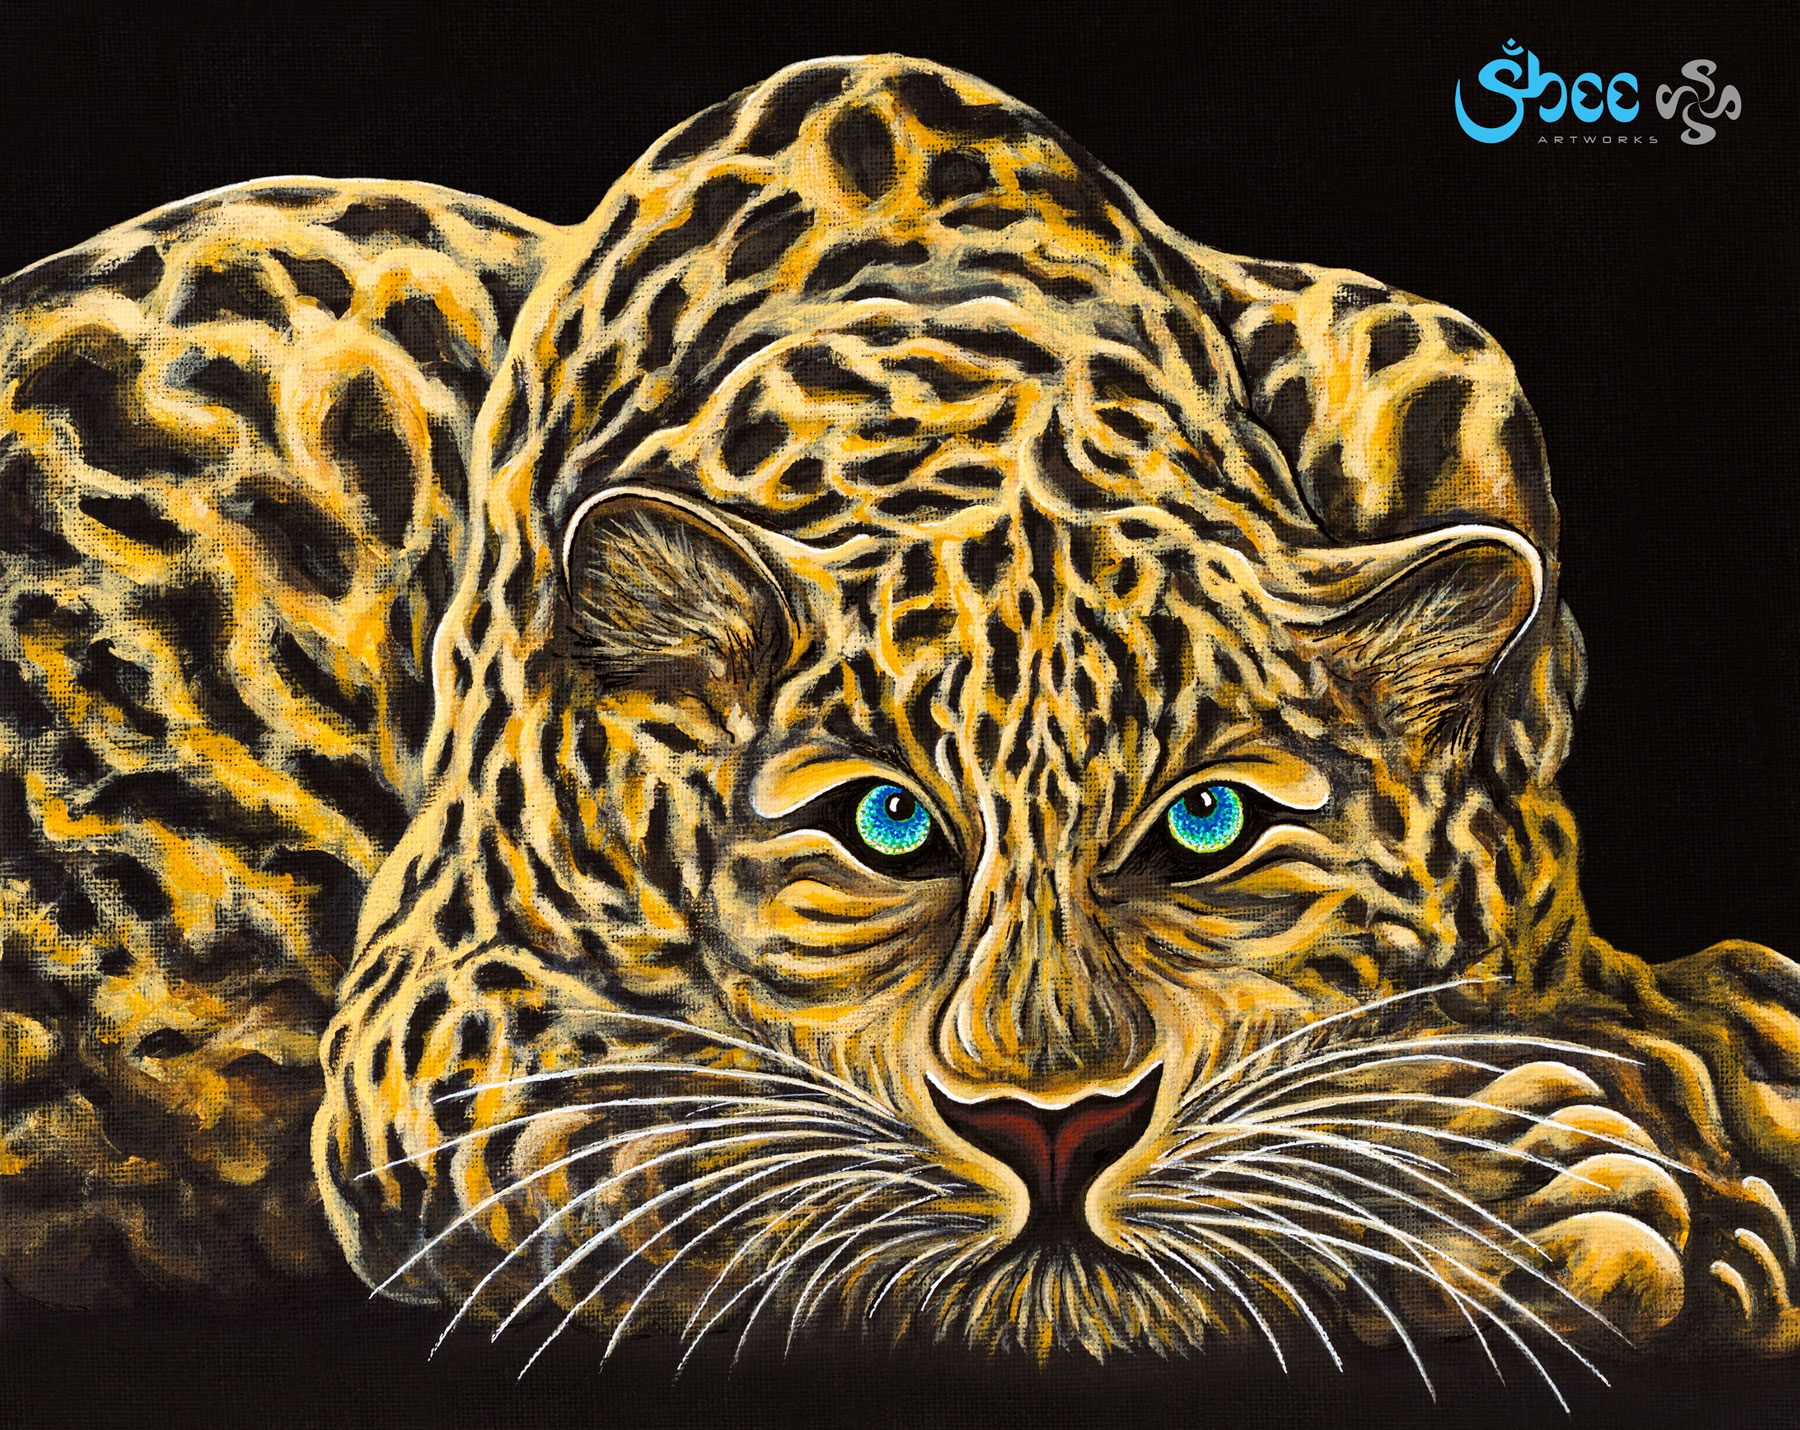 Retro Leopard - acrylic on canvas - 35 x 28 cm